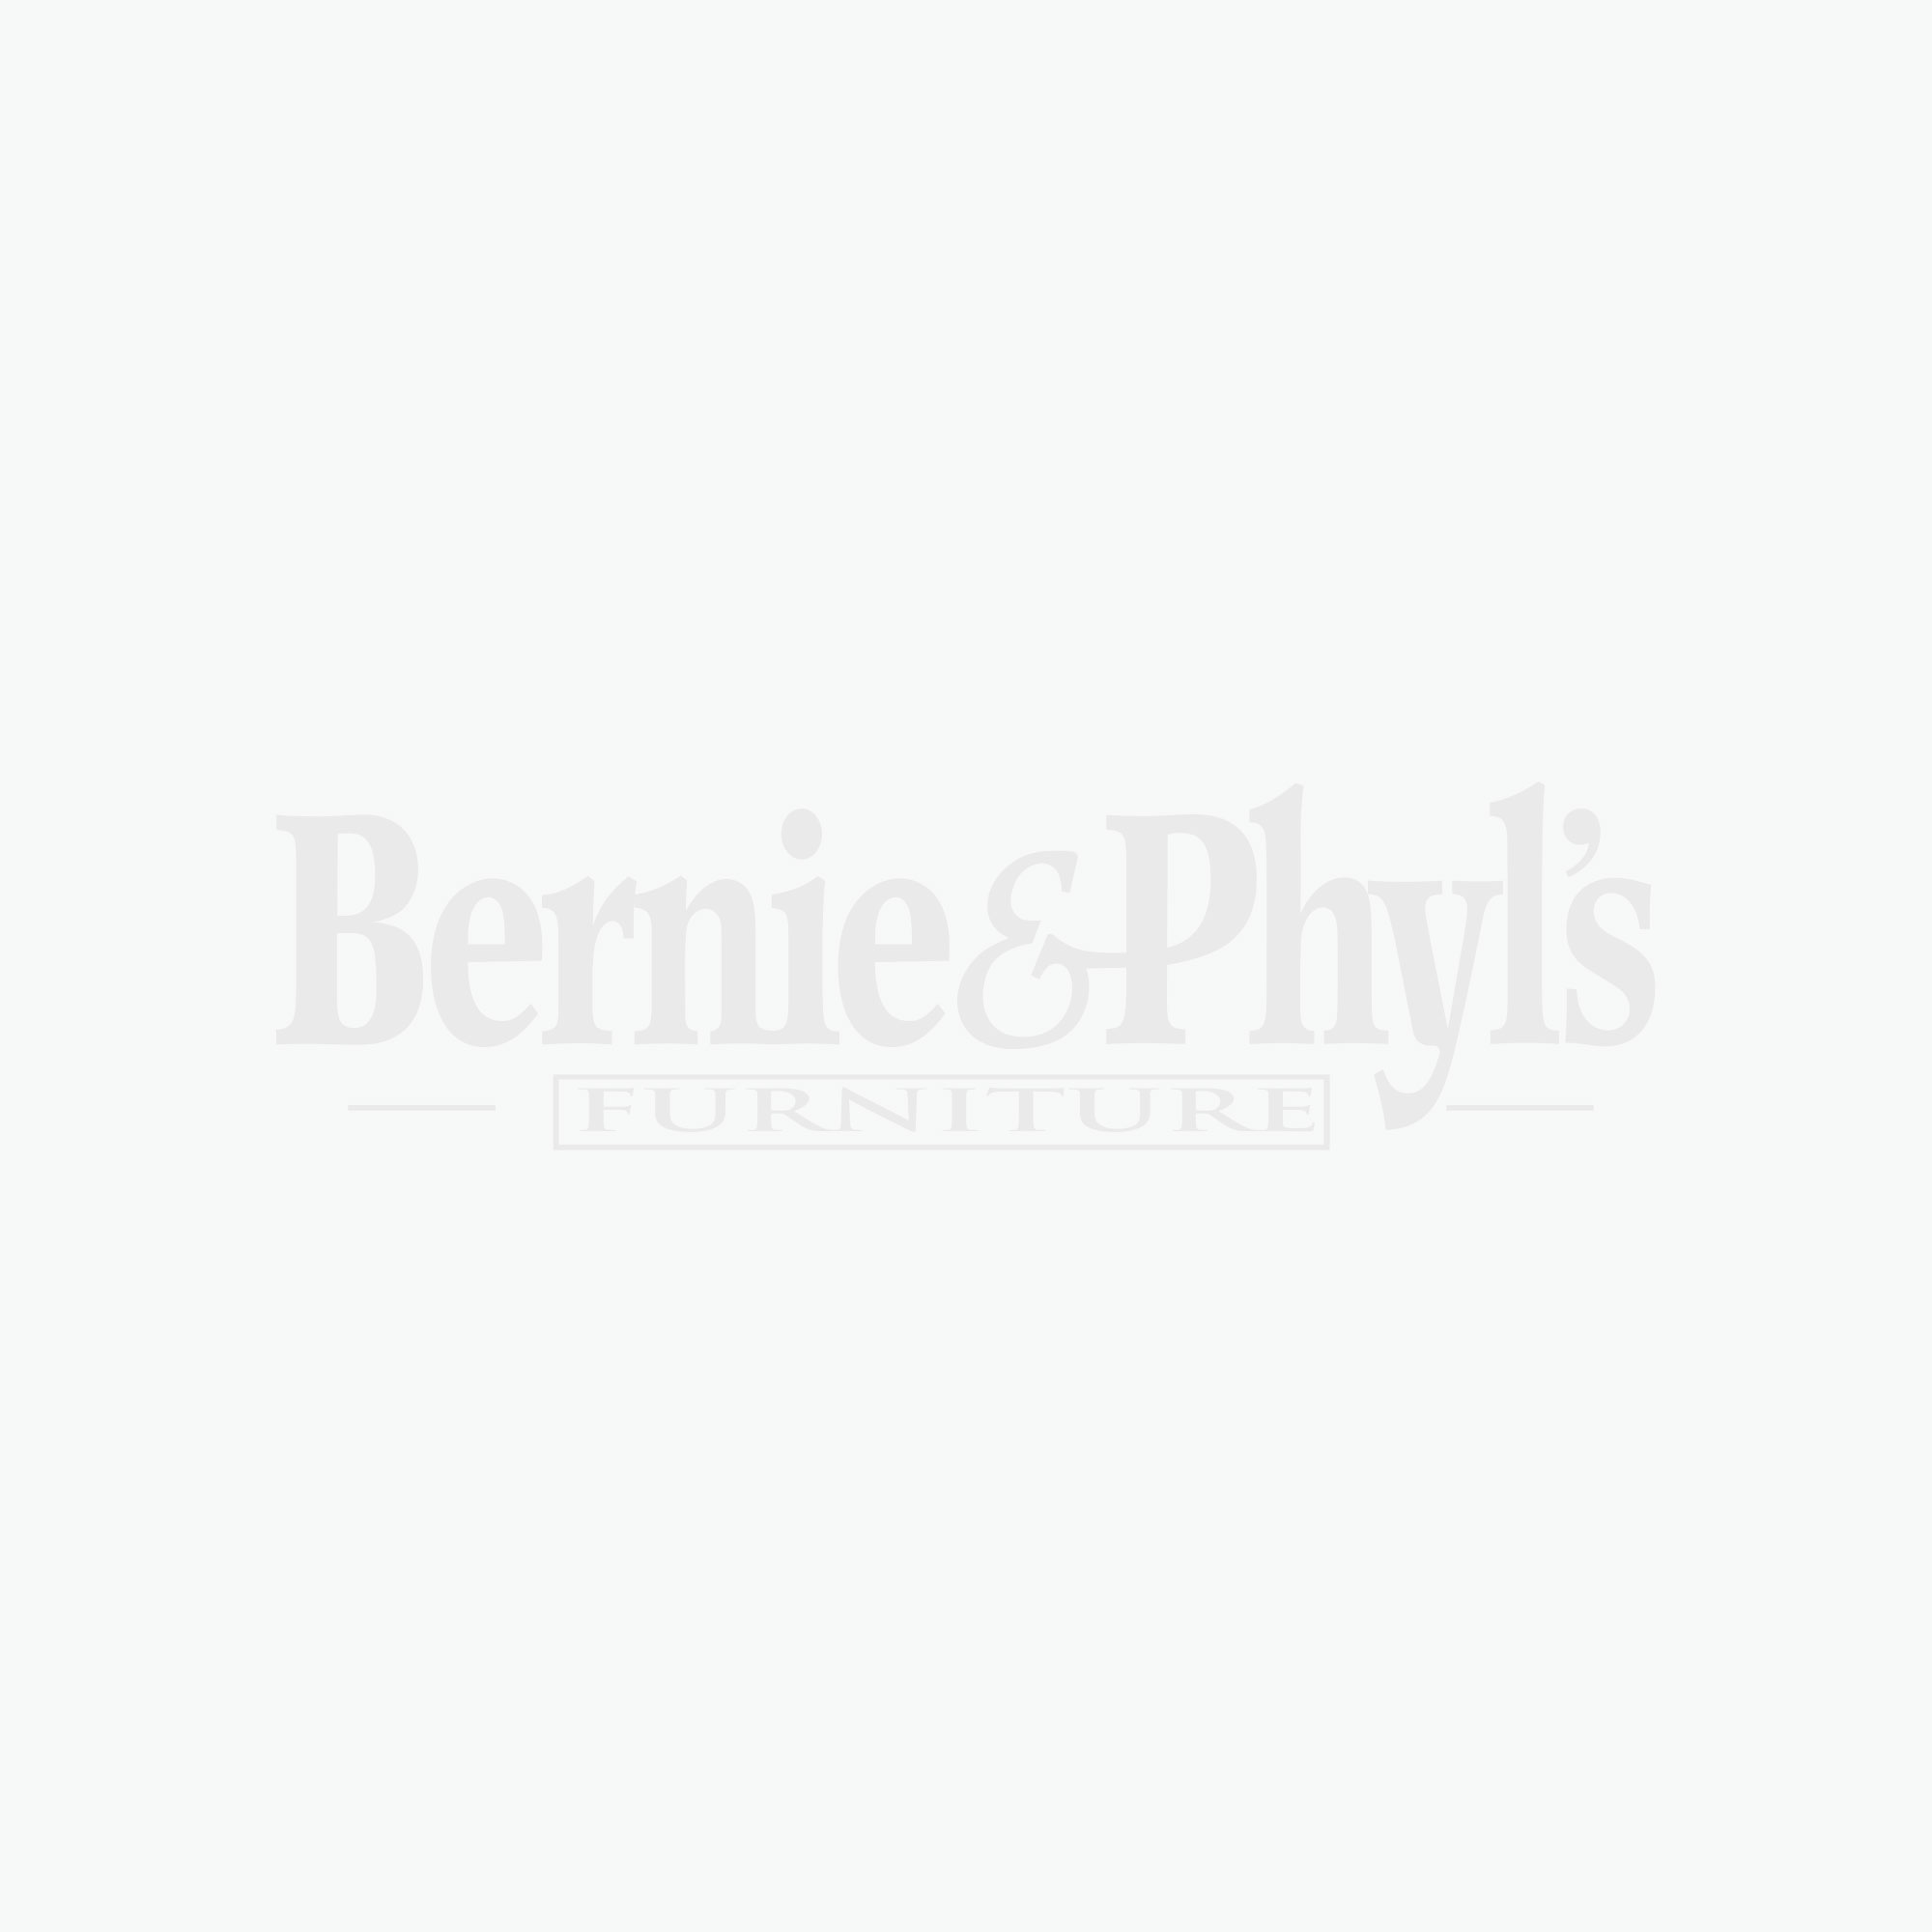 Gear Wall Art with Clock - (Set of 1) - GA1912R - by Southern Enterprises